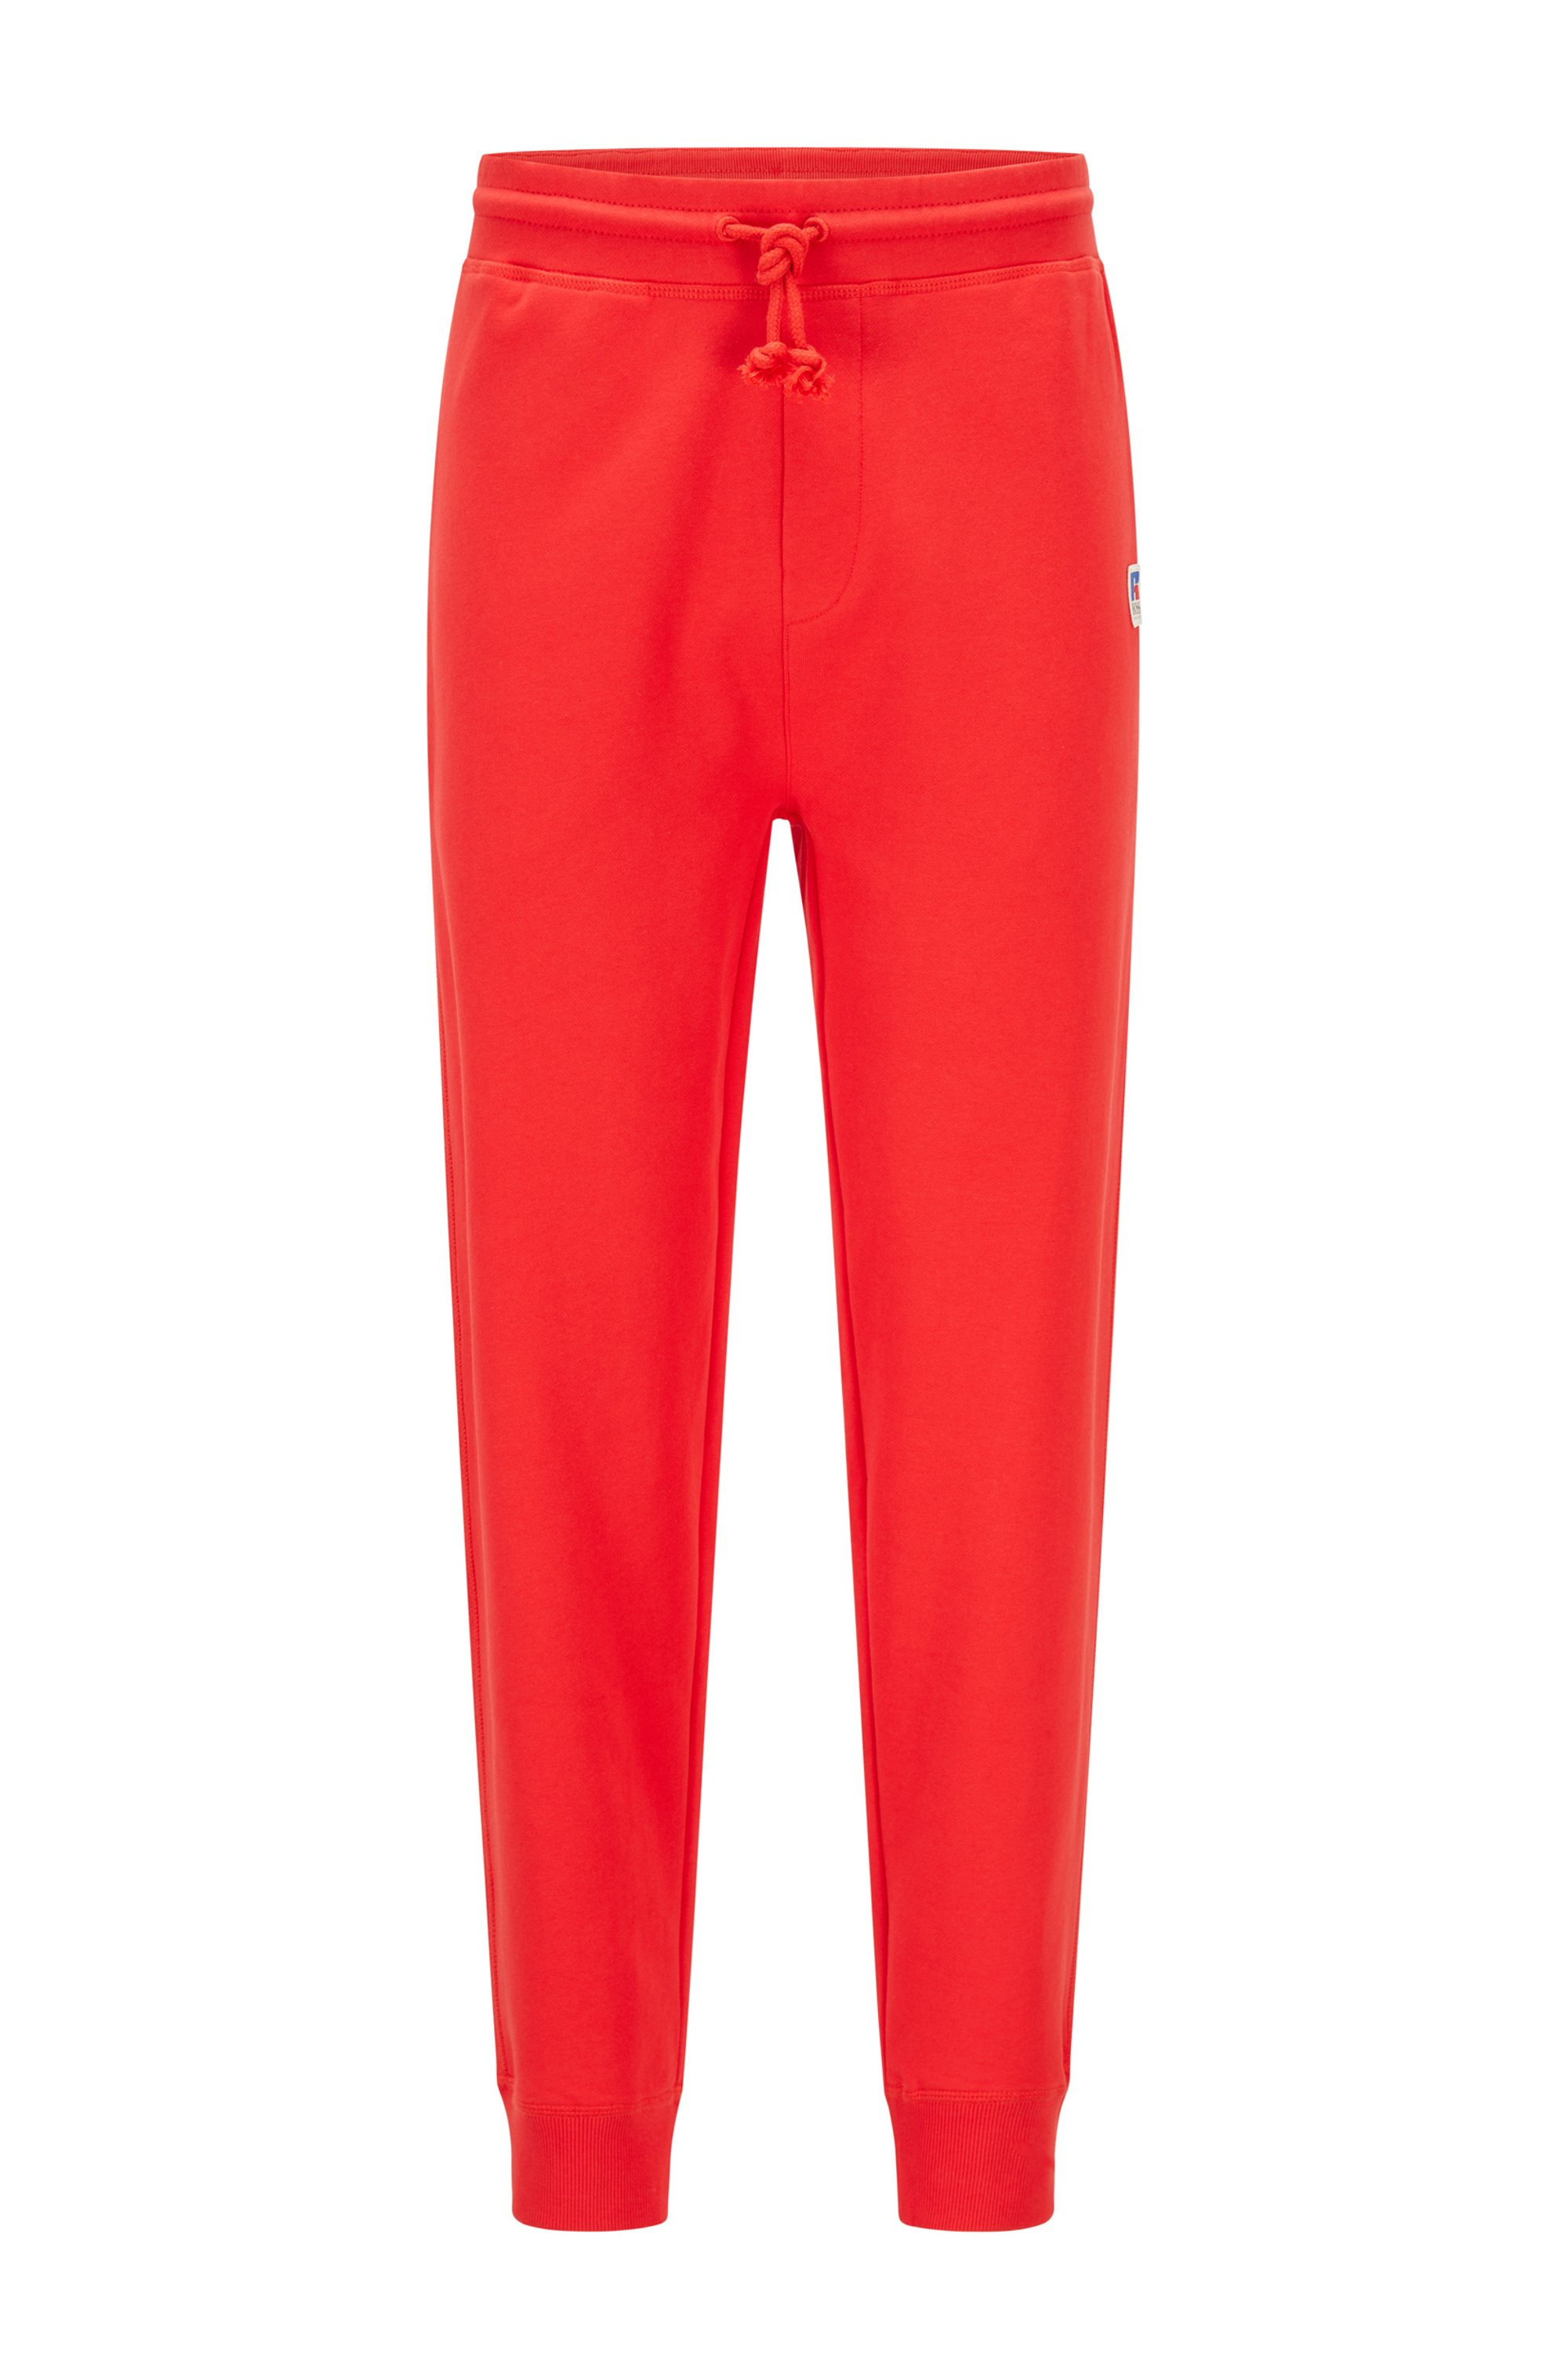 Cuffed tracksuit bottoms in organic cotton with exclusive logo, Red